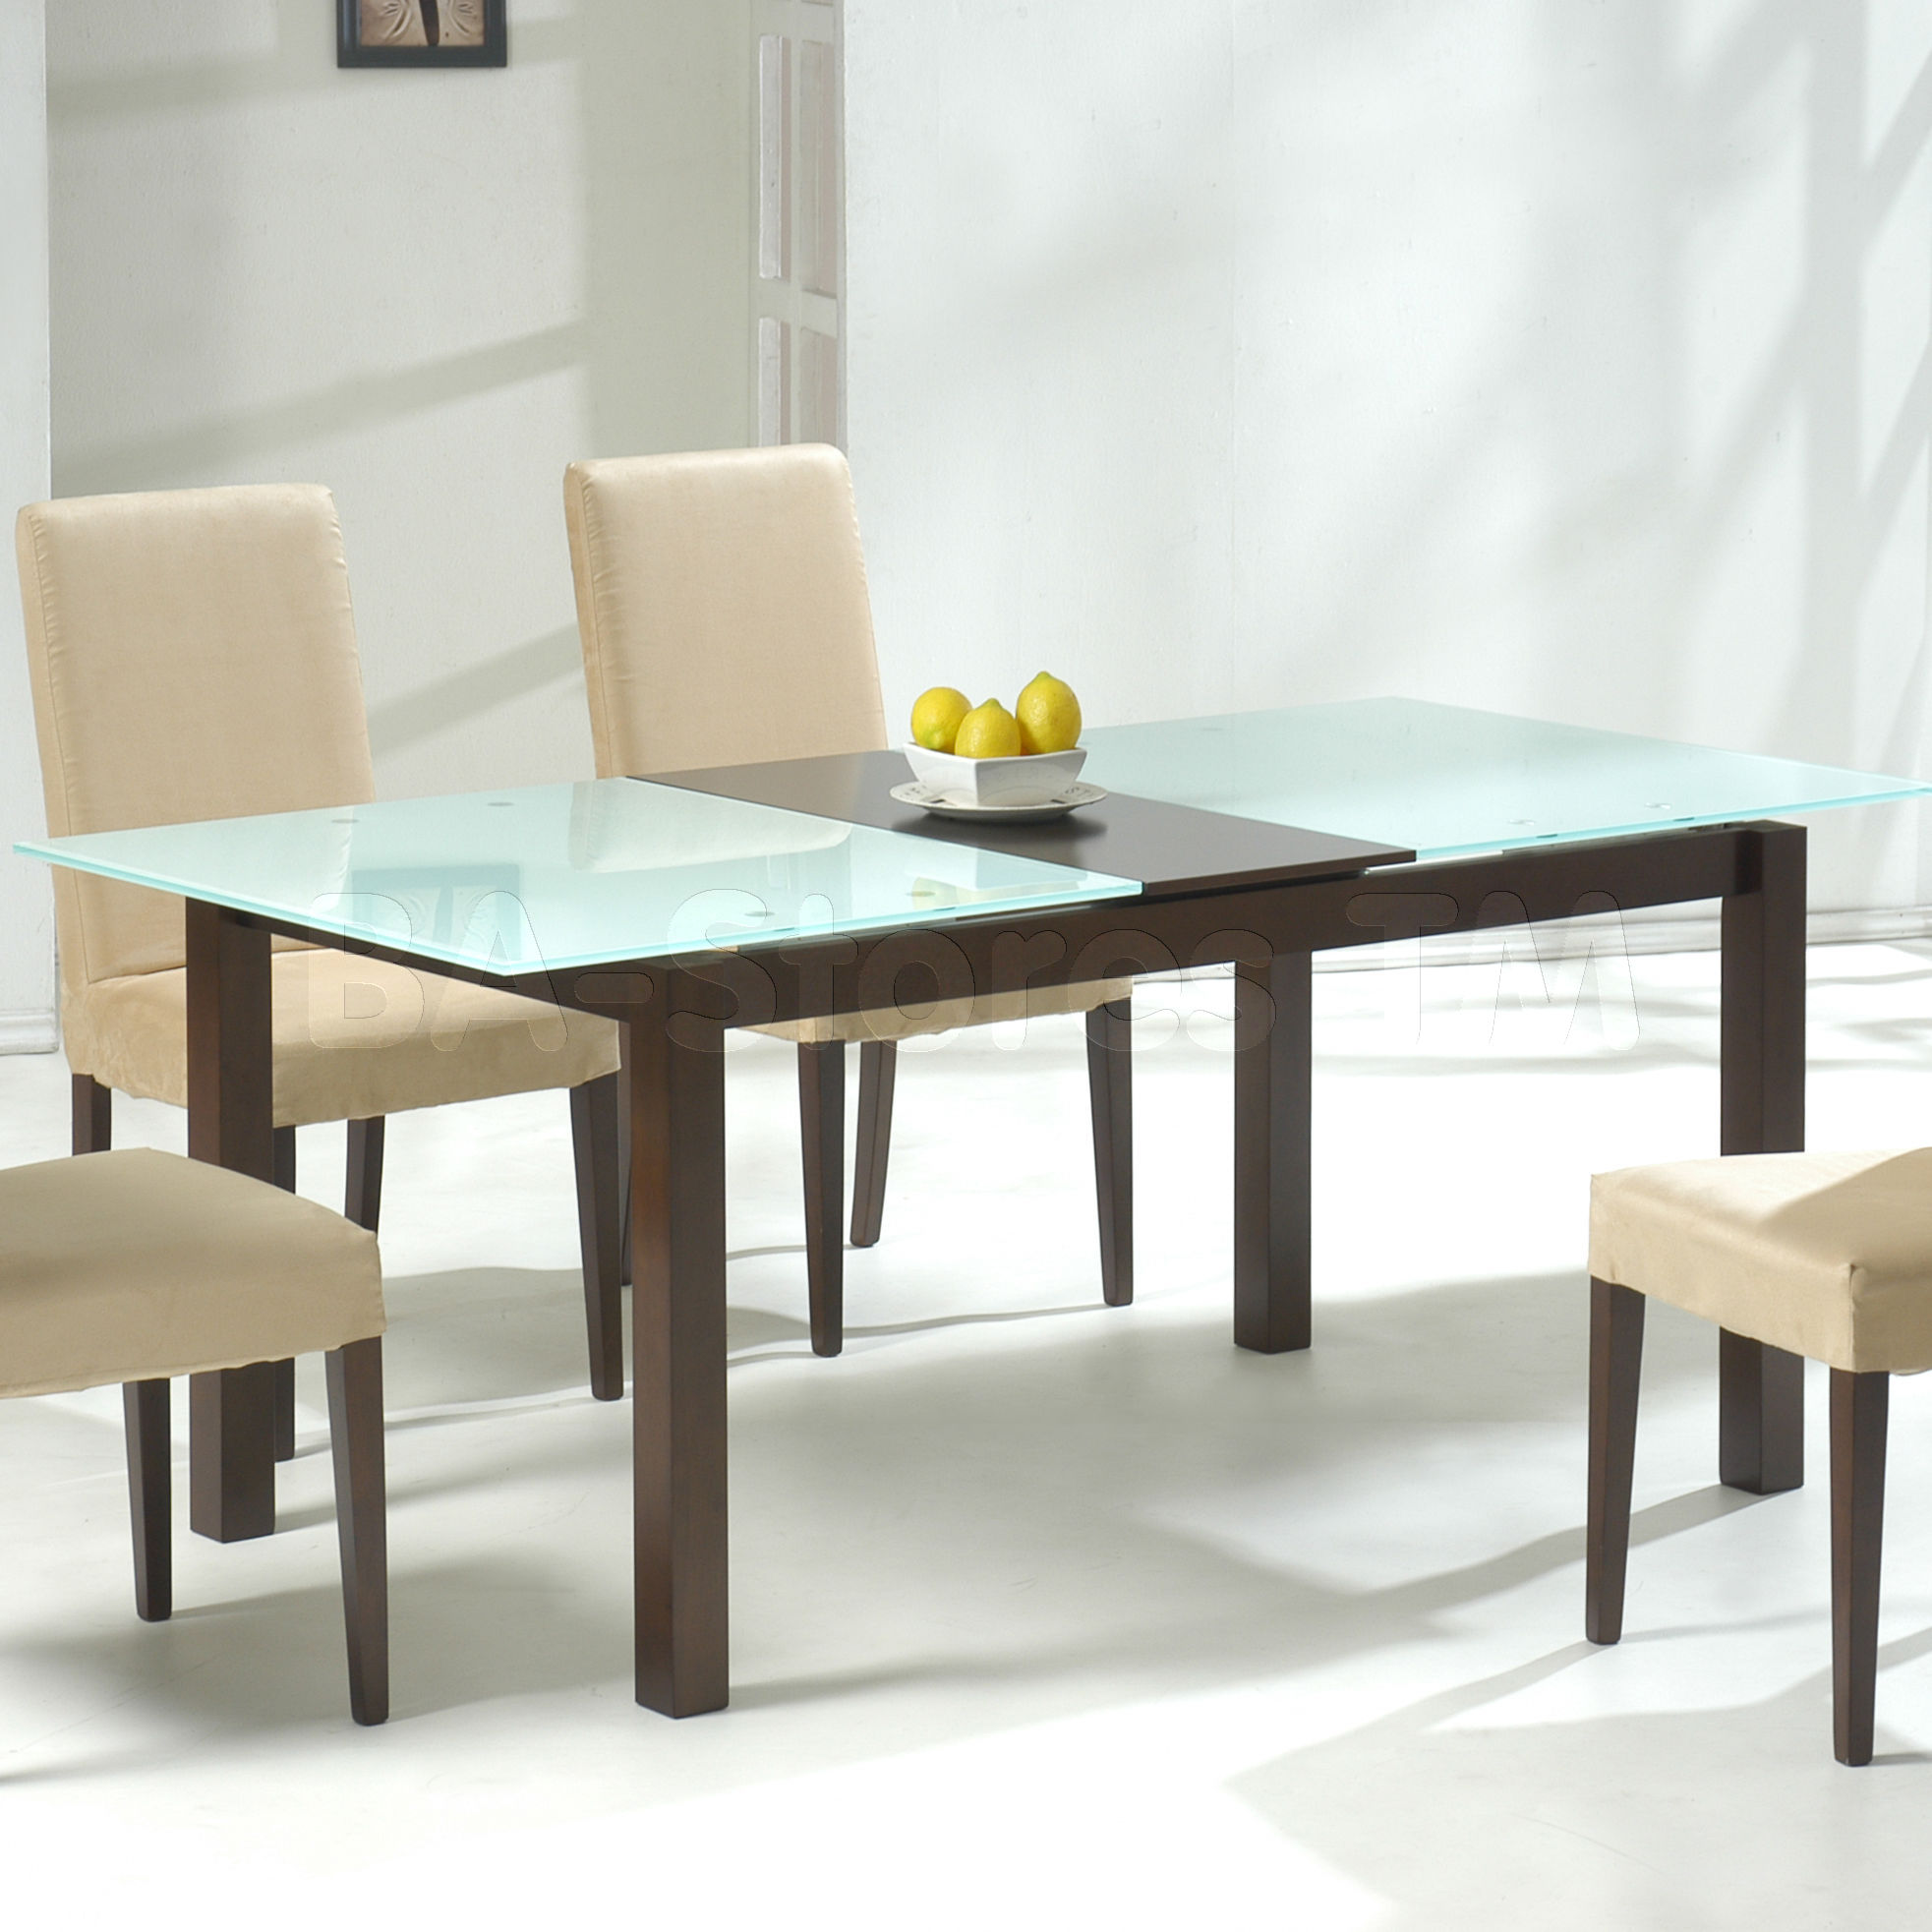 Small Wooden Dining Table: Small Rectangular Dining Table